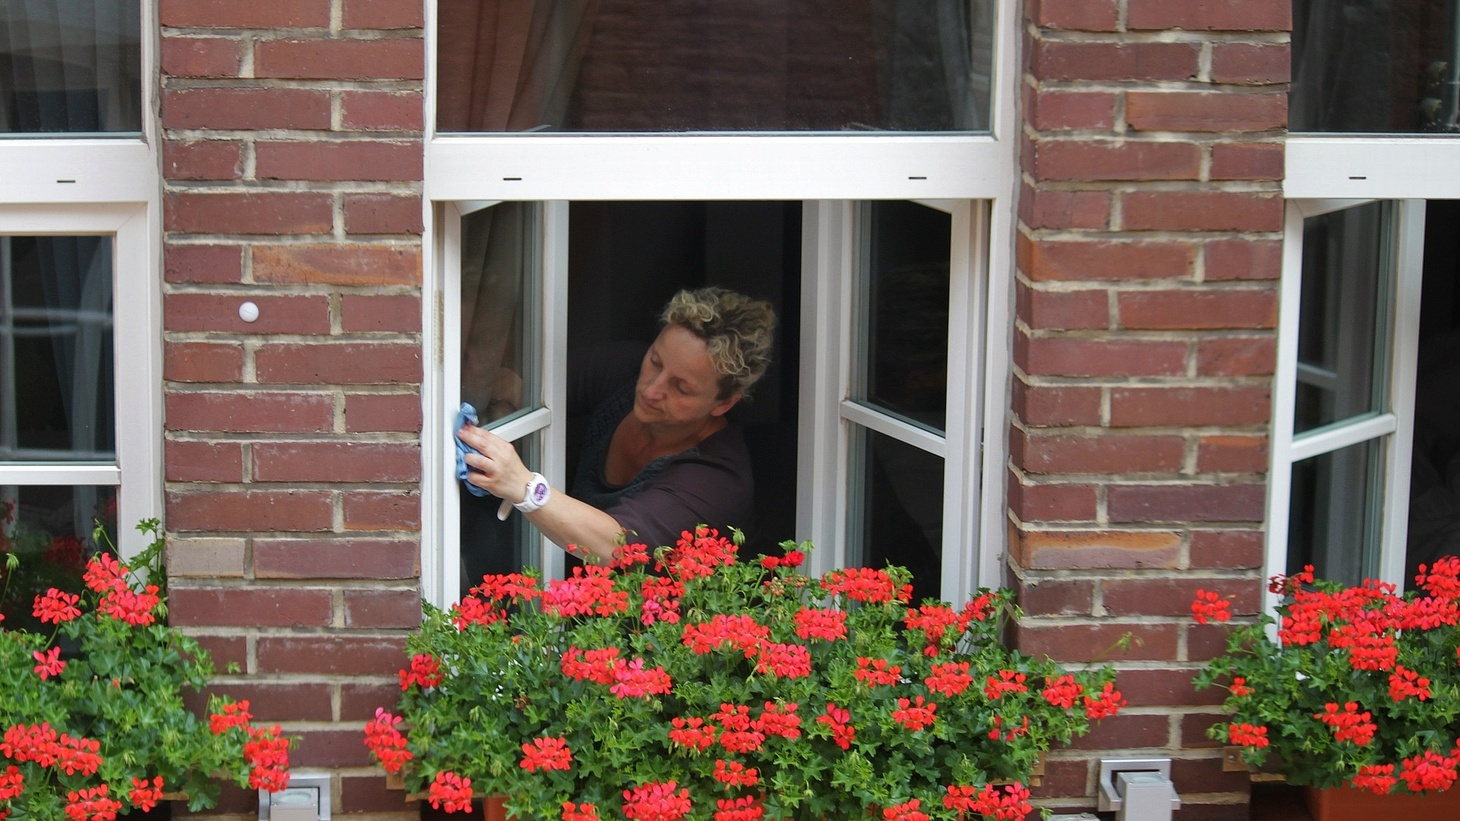 A cleaning lady washing the windows.